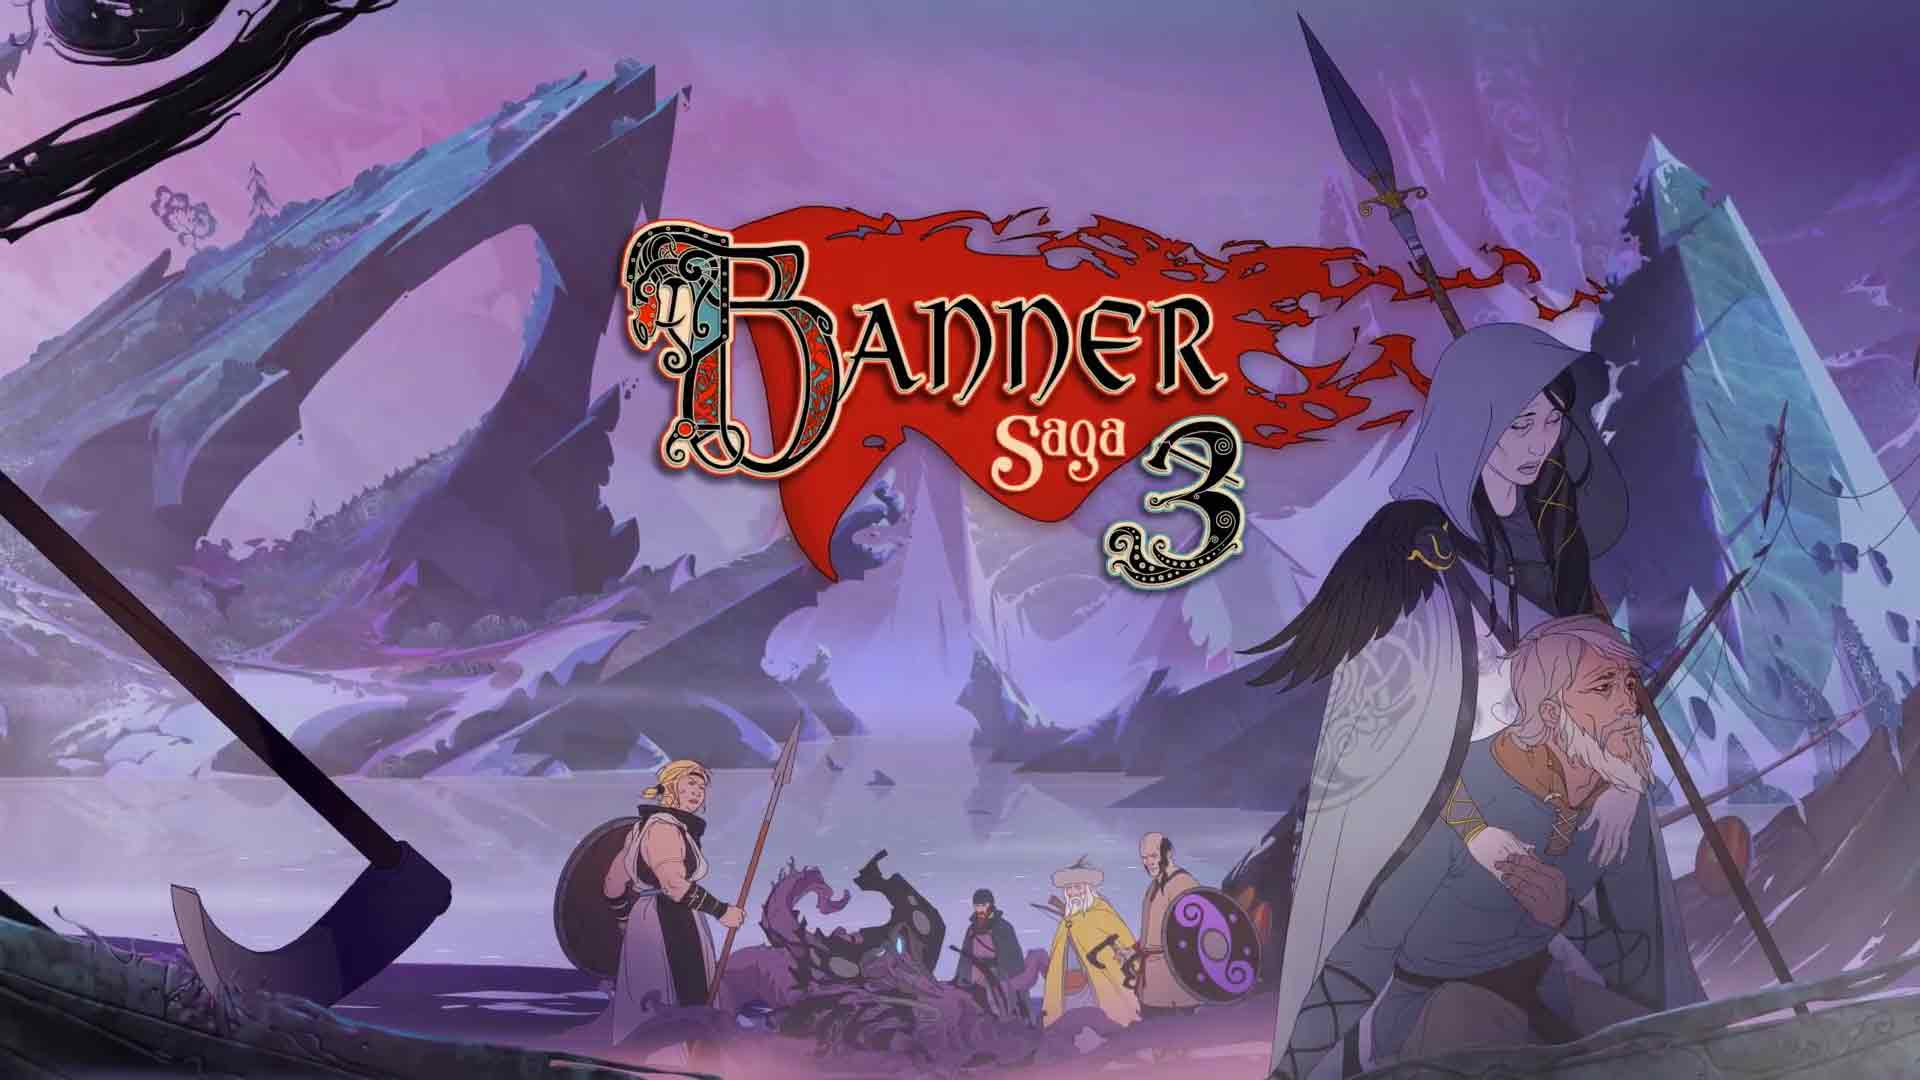 The Banner Saga 3,The Banner Saga,Nintendo Switch,Nintendo Direct,Nintendo,نسخه نینتندو سوییچ بازی The Banner Saga 3,تاریخ انتشار بازی The Banner Saga 3